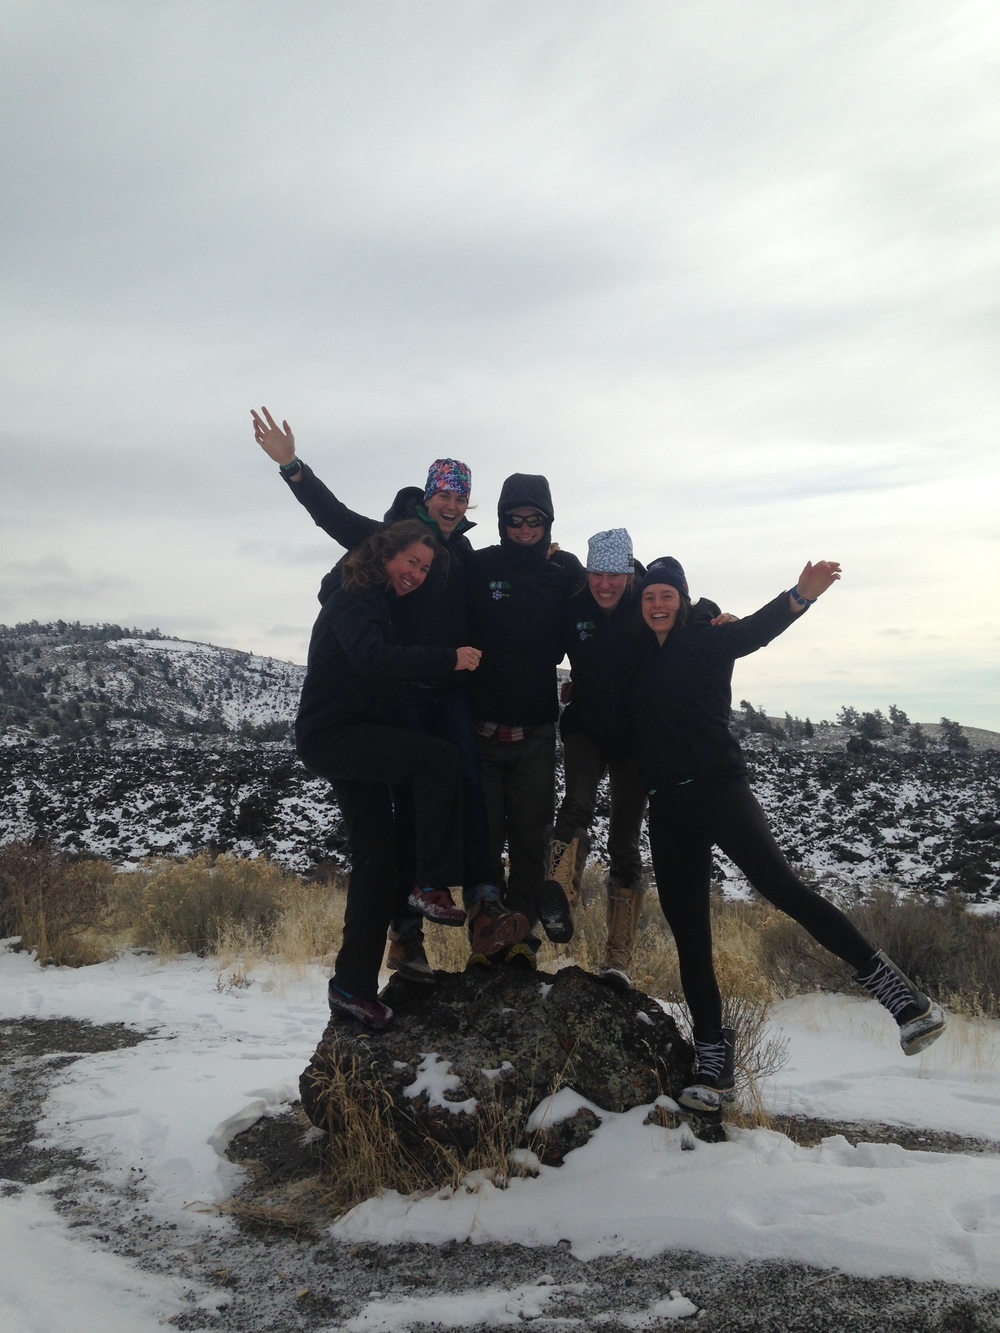 Team pit stop at Craters of the Moon.